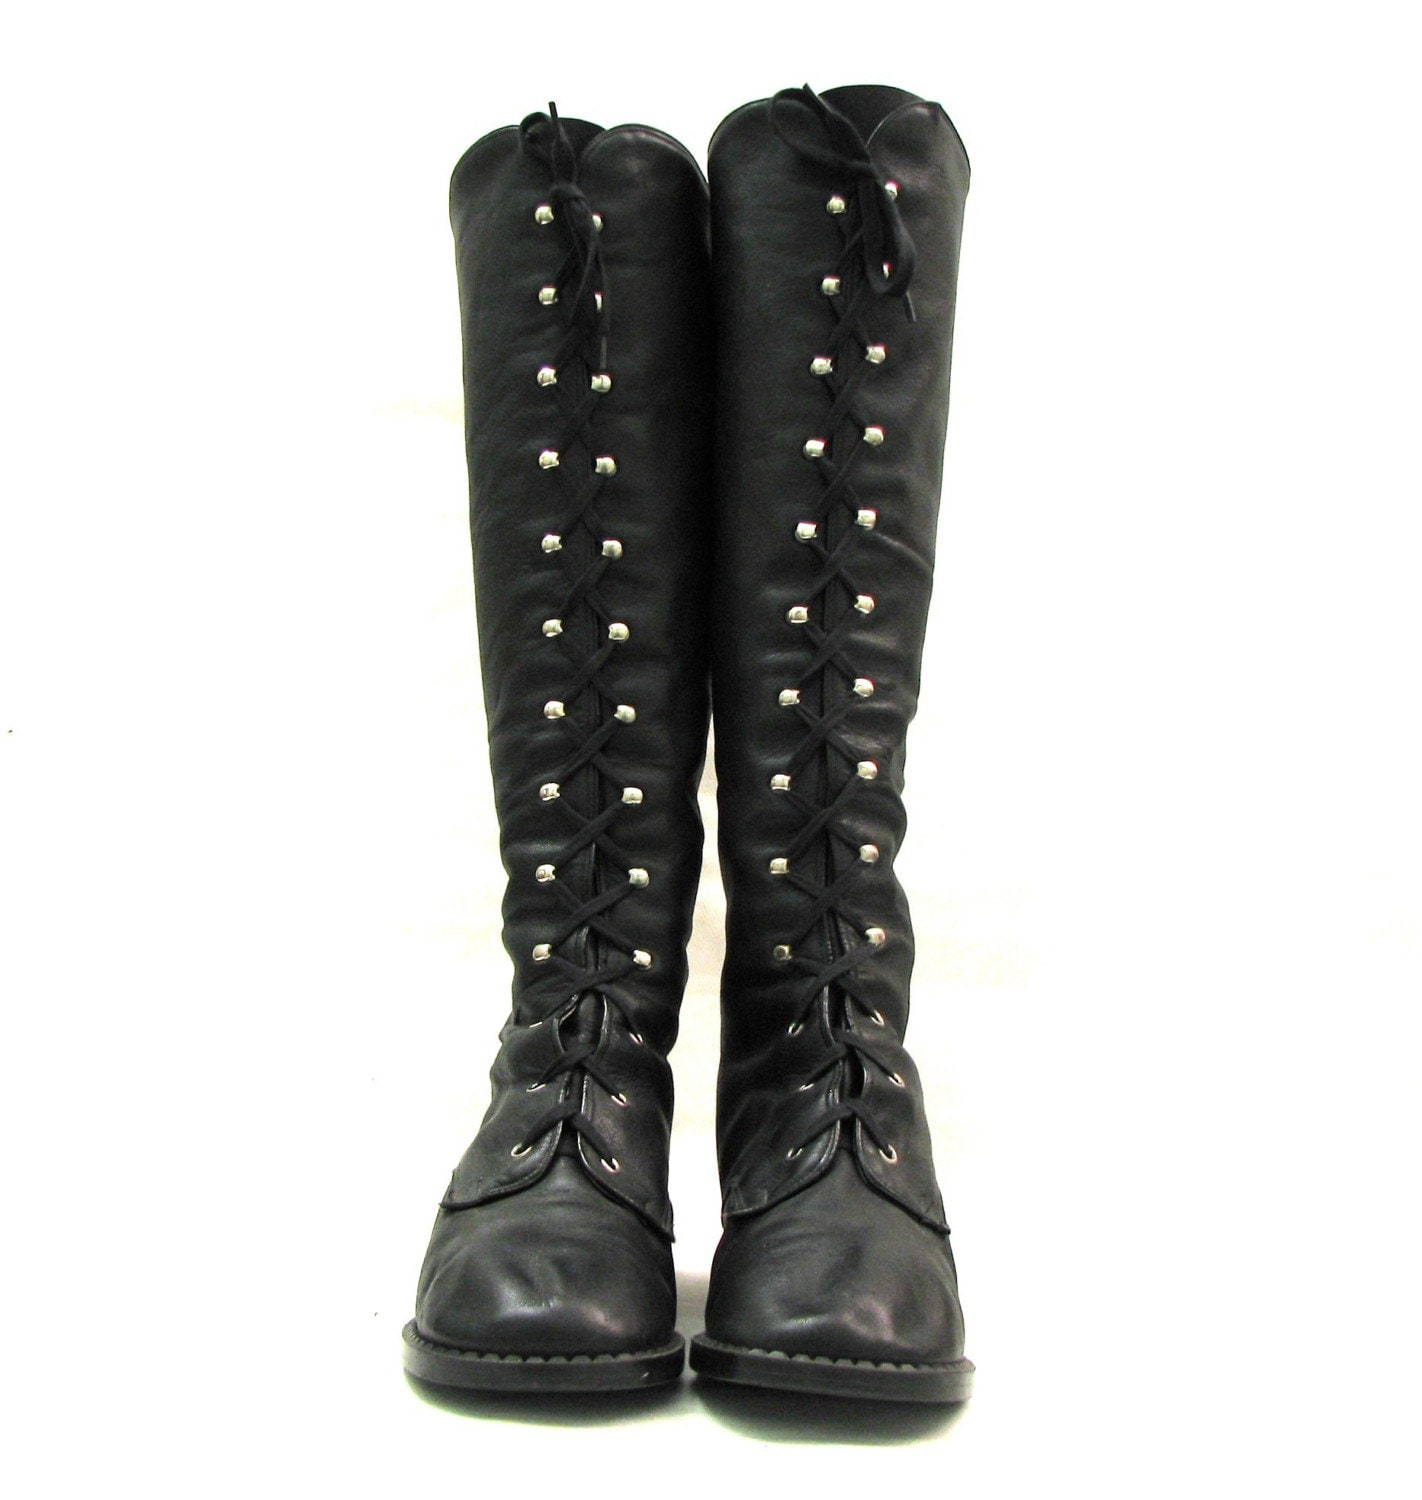 black leather knee high lace up combat boots size 9 5 10